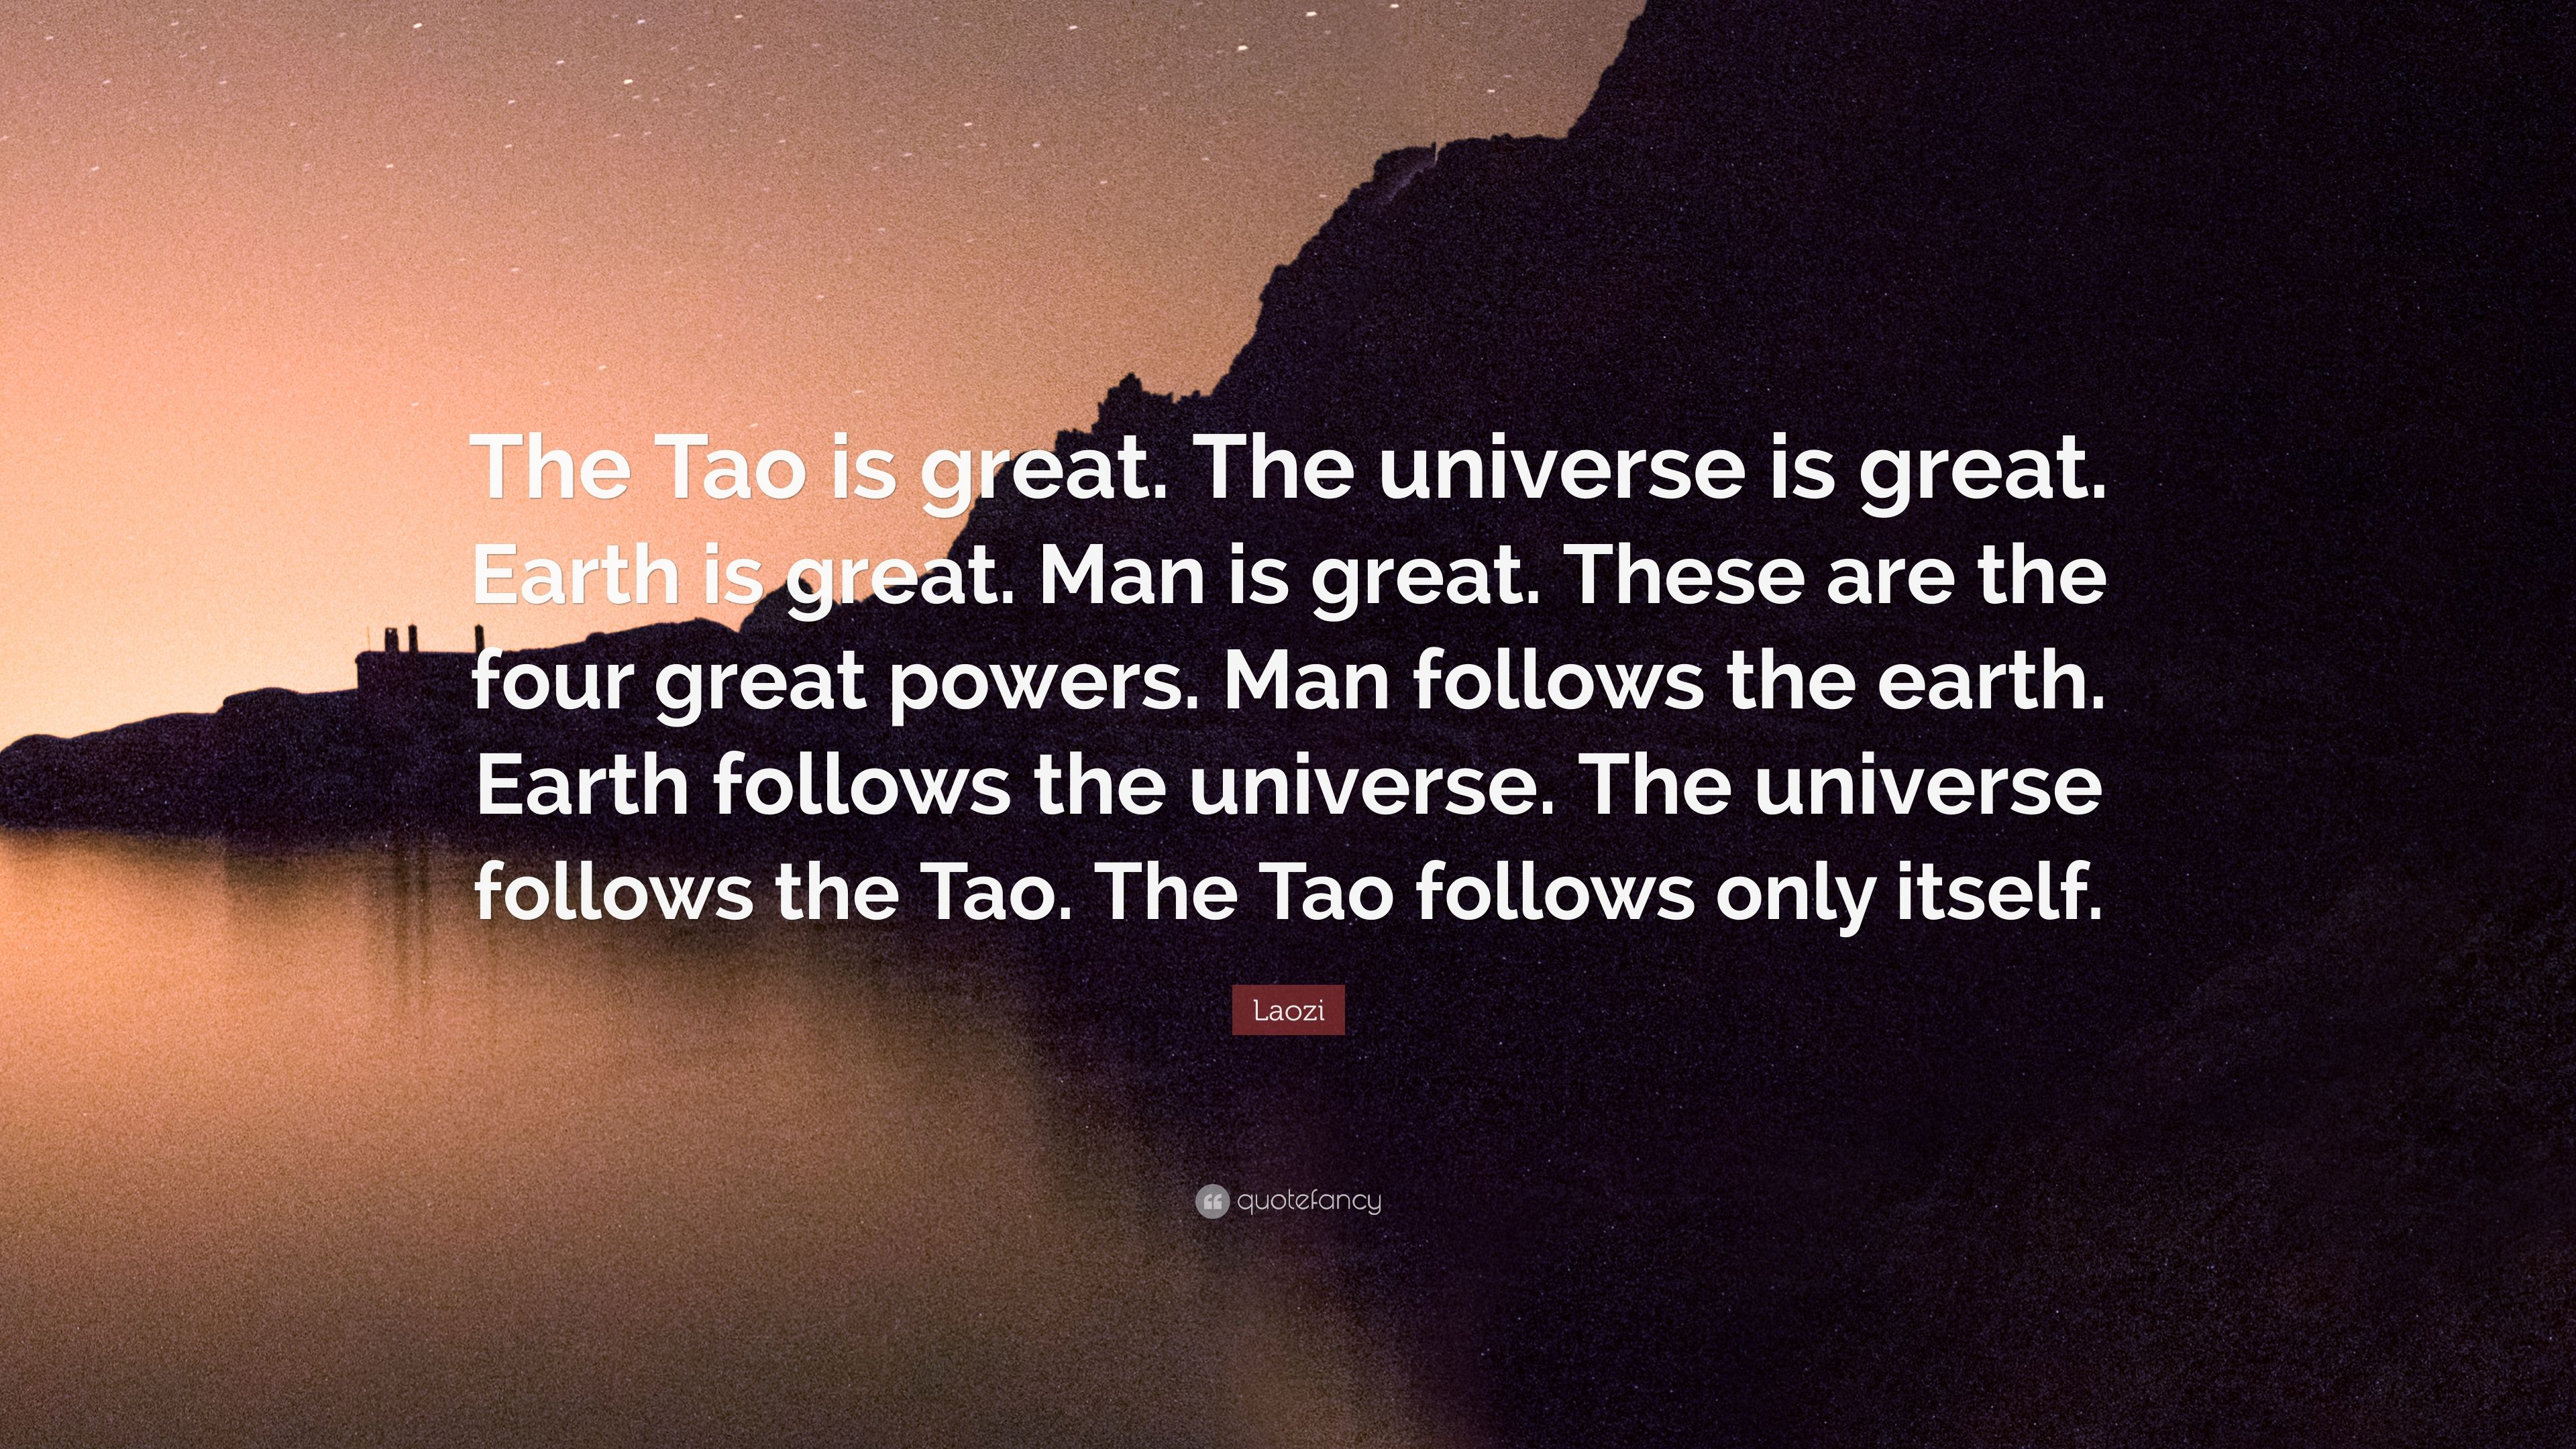 4302007-Laozi-Quote-The-Tao-is-great-The-universe-is-great-Earth-is-great.jpg